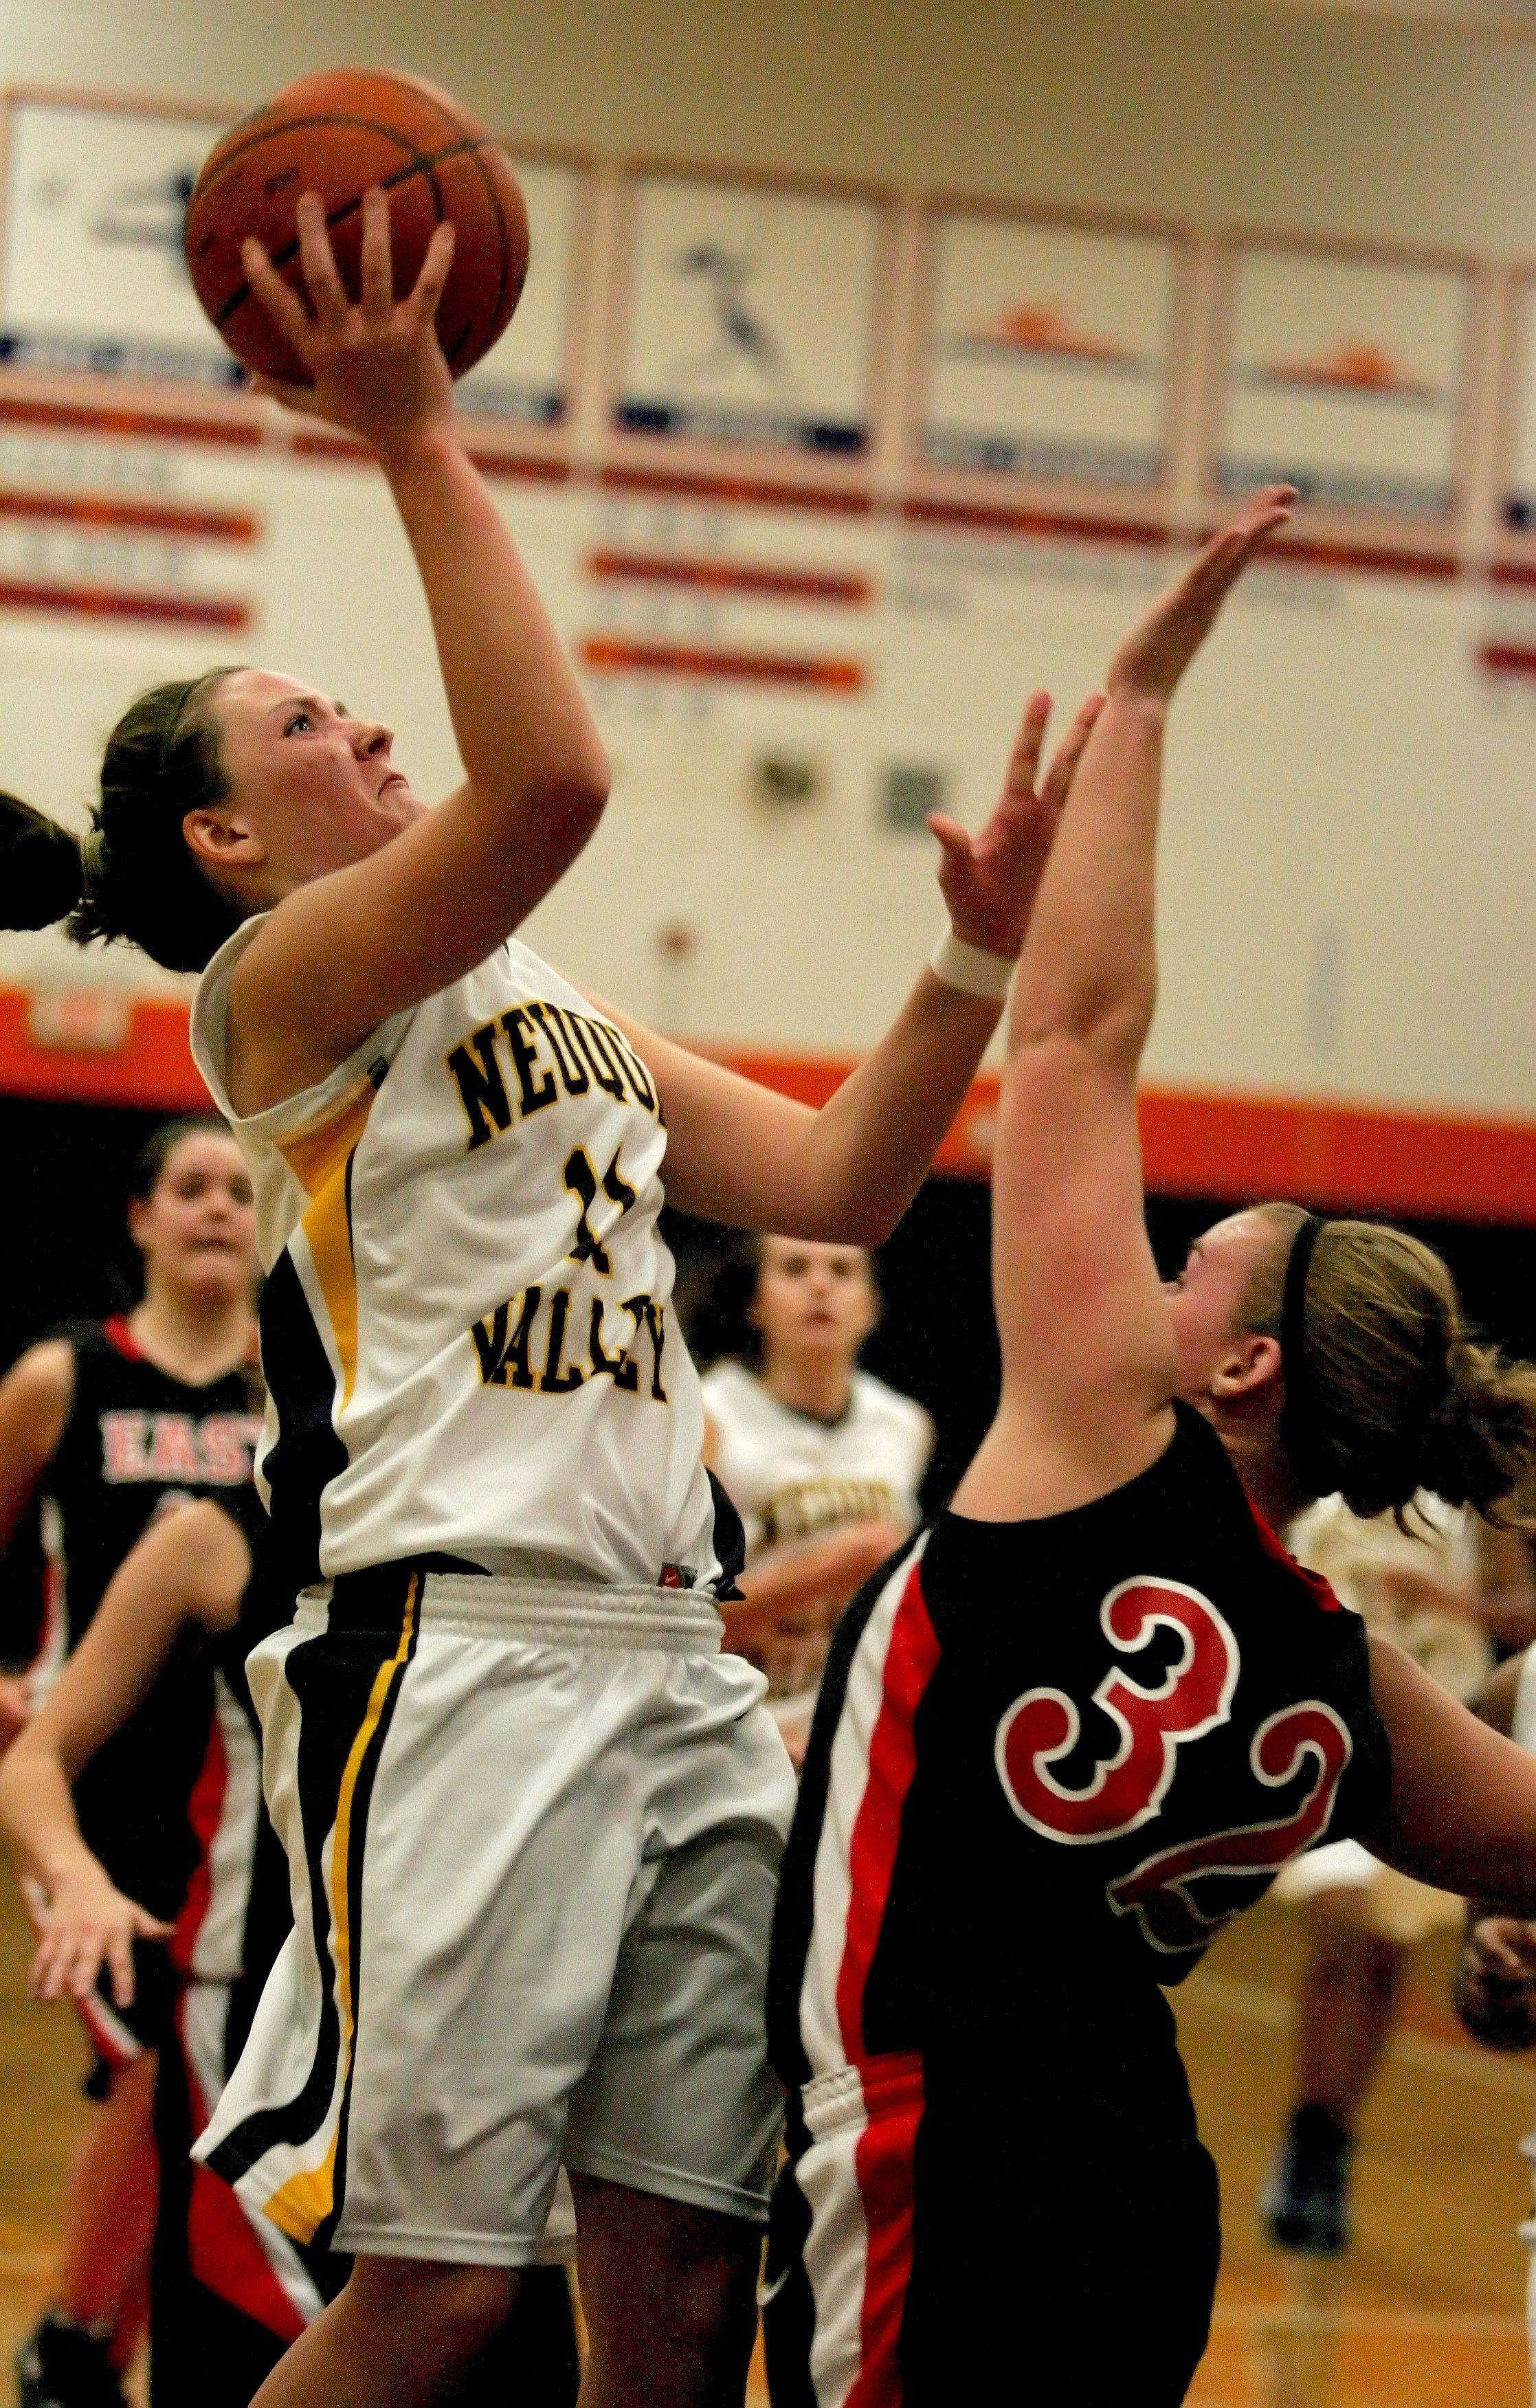 Megan Doody of Neuqua Valley, left, makes a shot over Megan Shannon of Glenbard East .